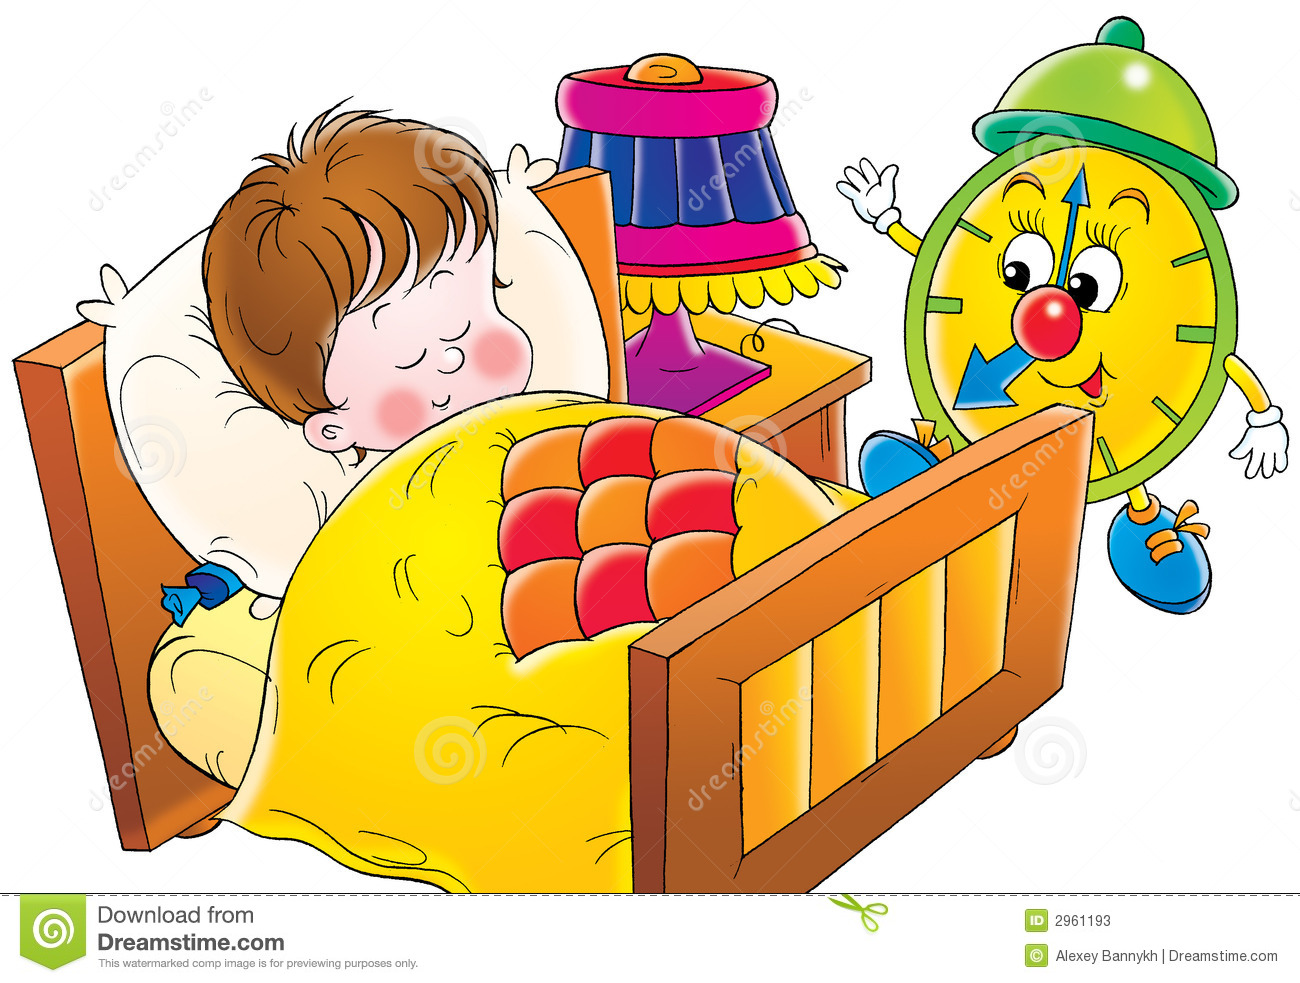 clipart good morning animated - photo #43